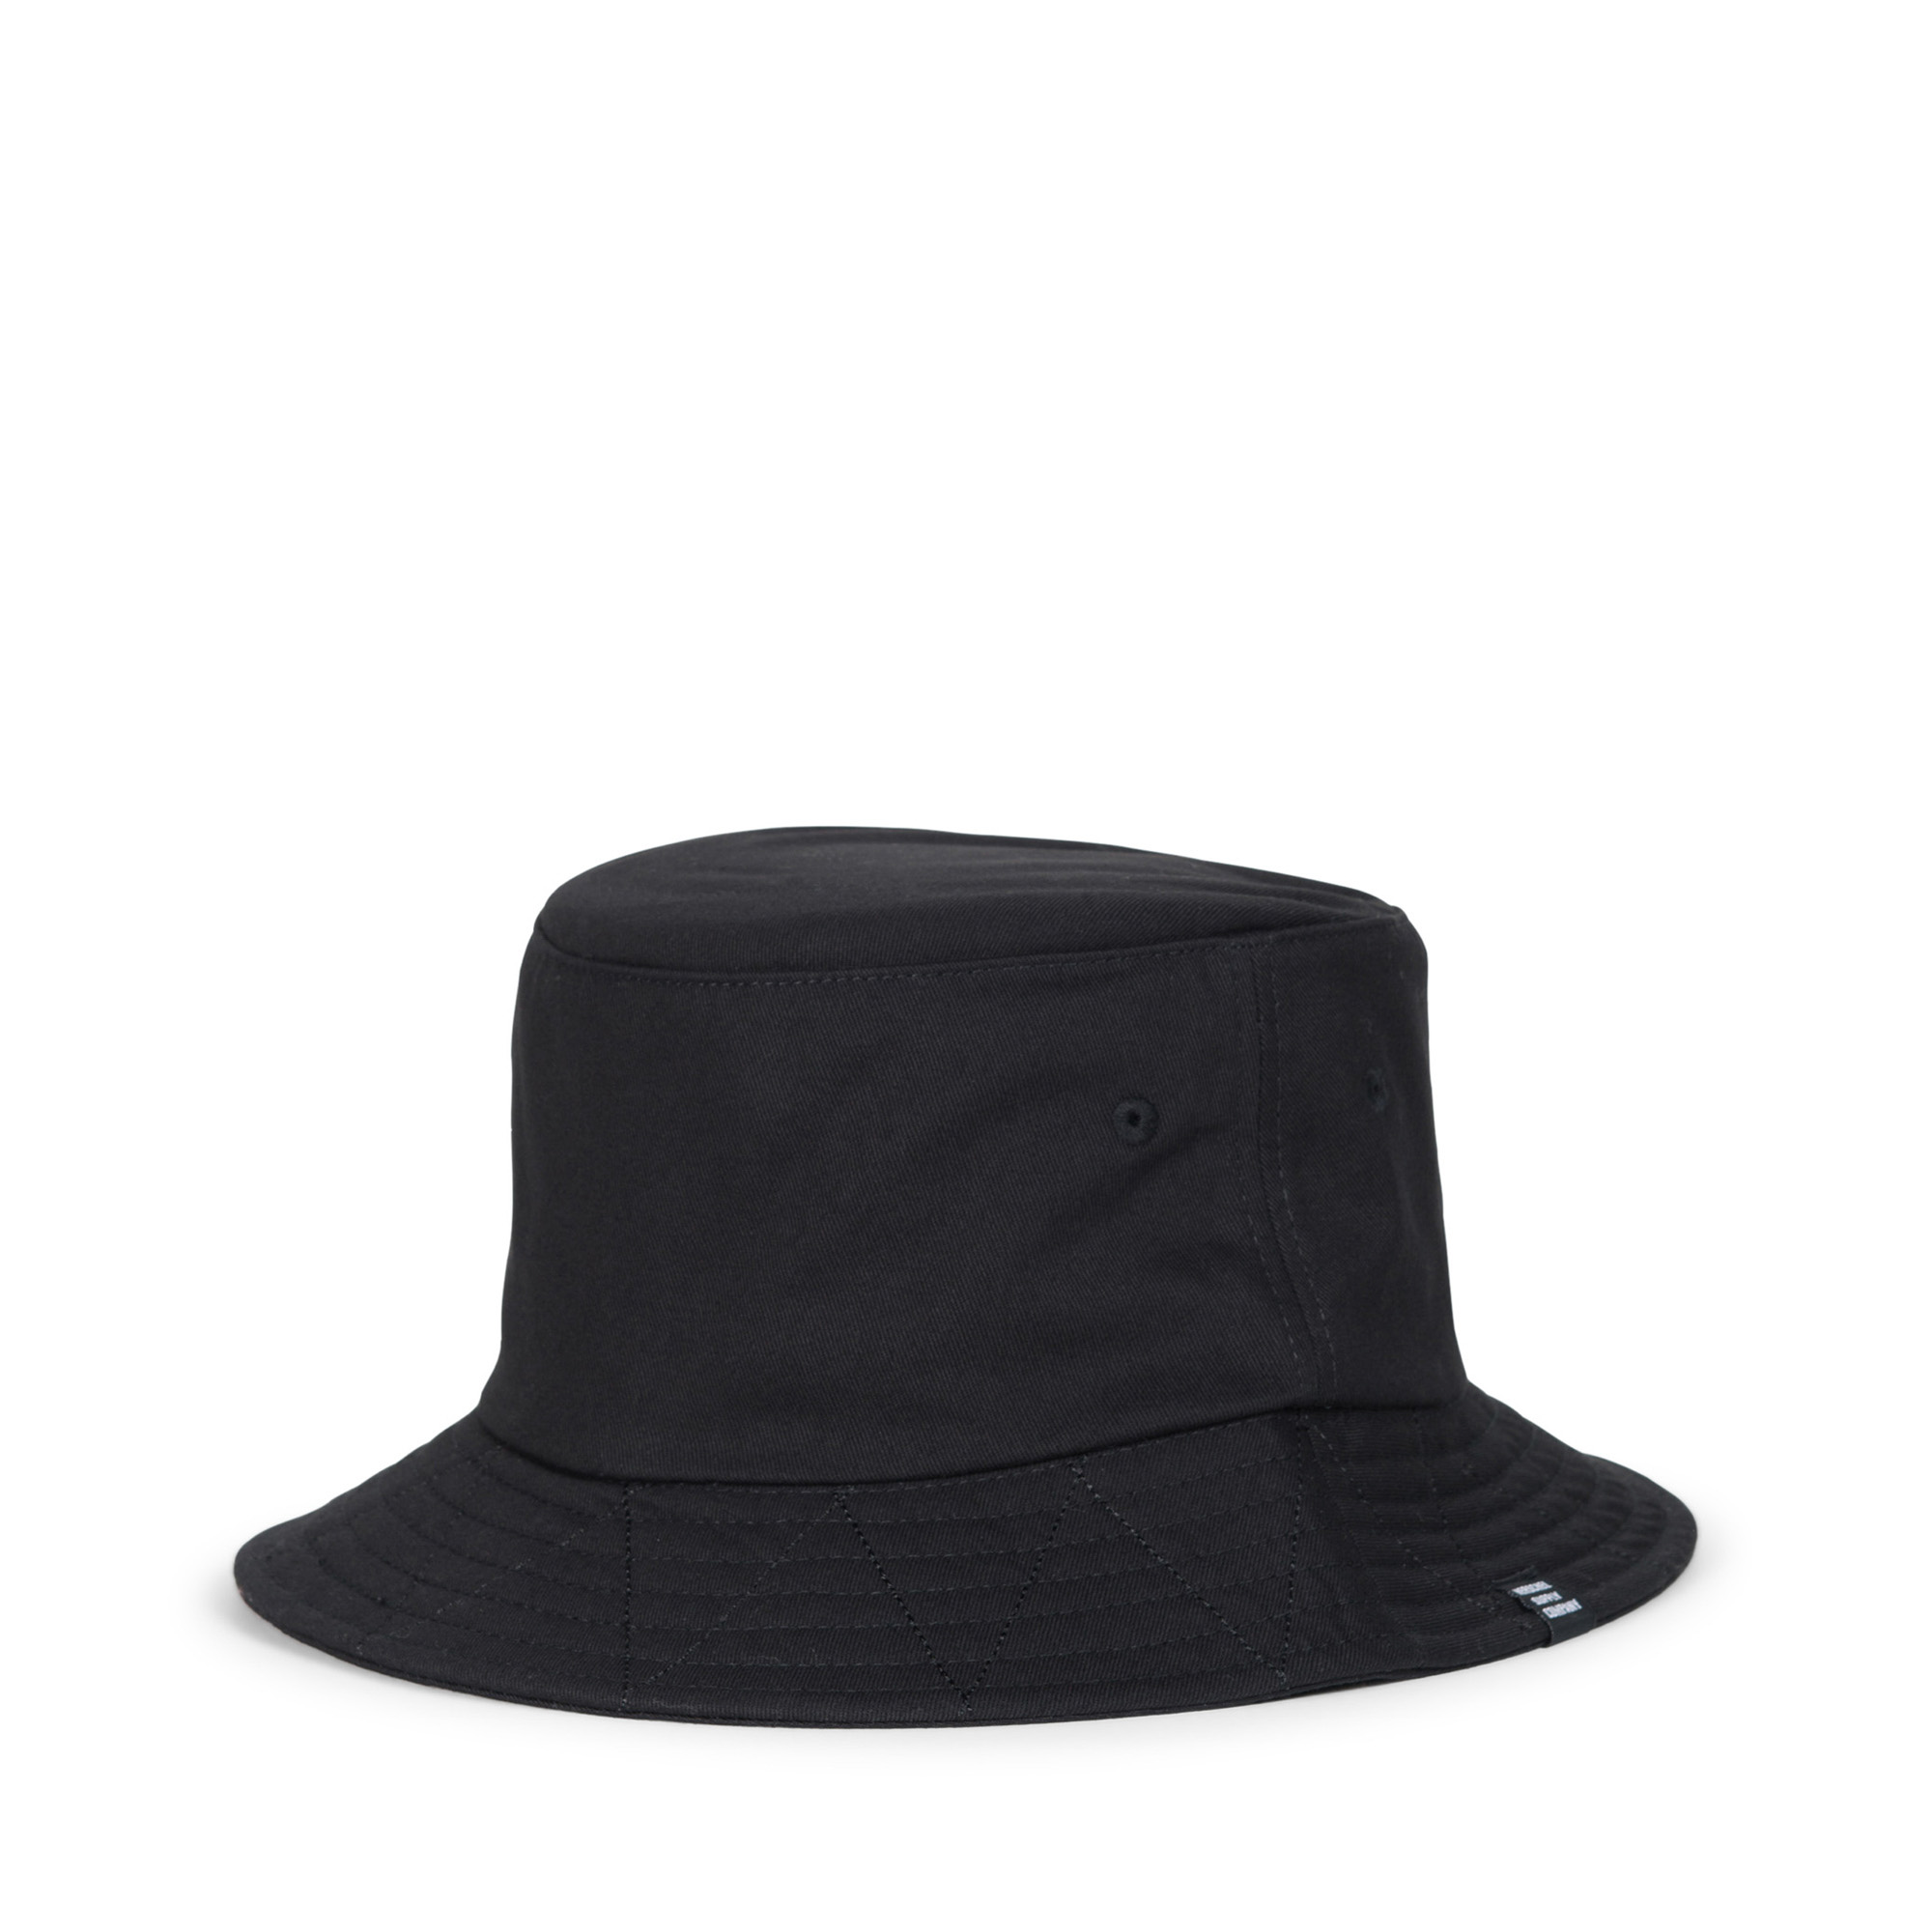 3933560a544b8f Lake Bucket Hat | Herschel Supply Company